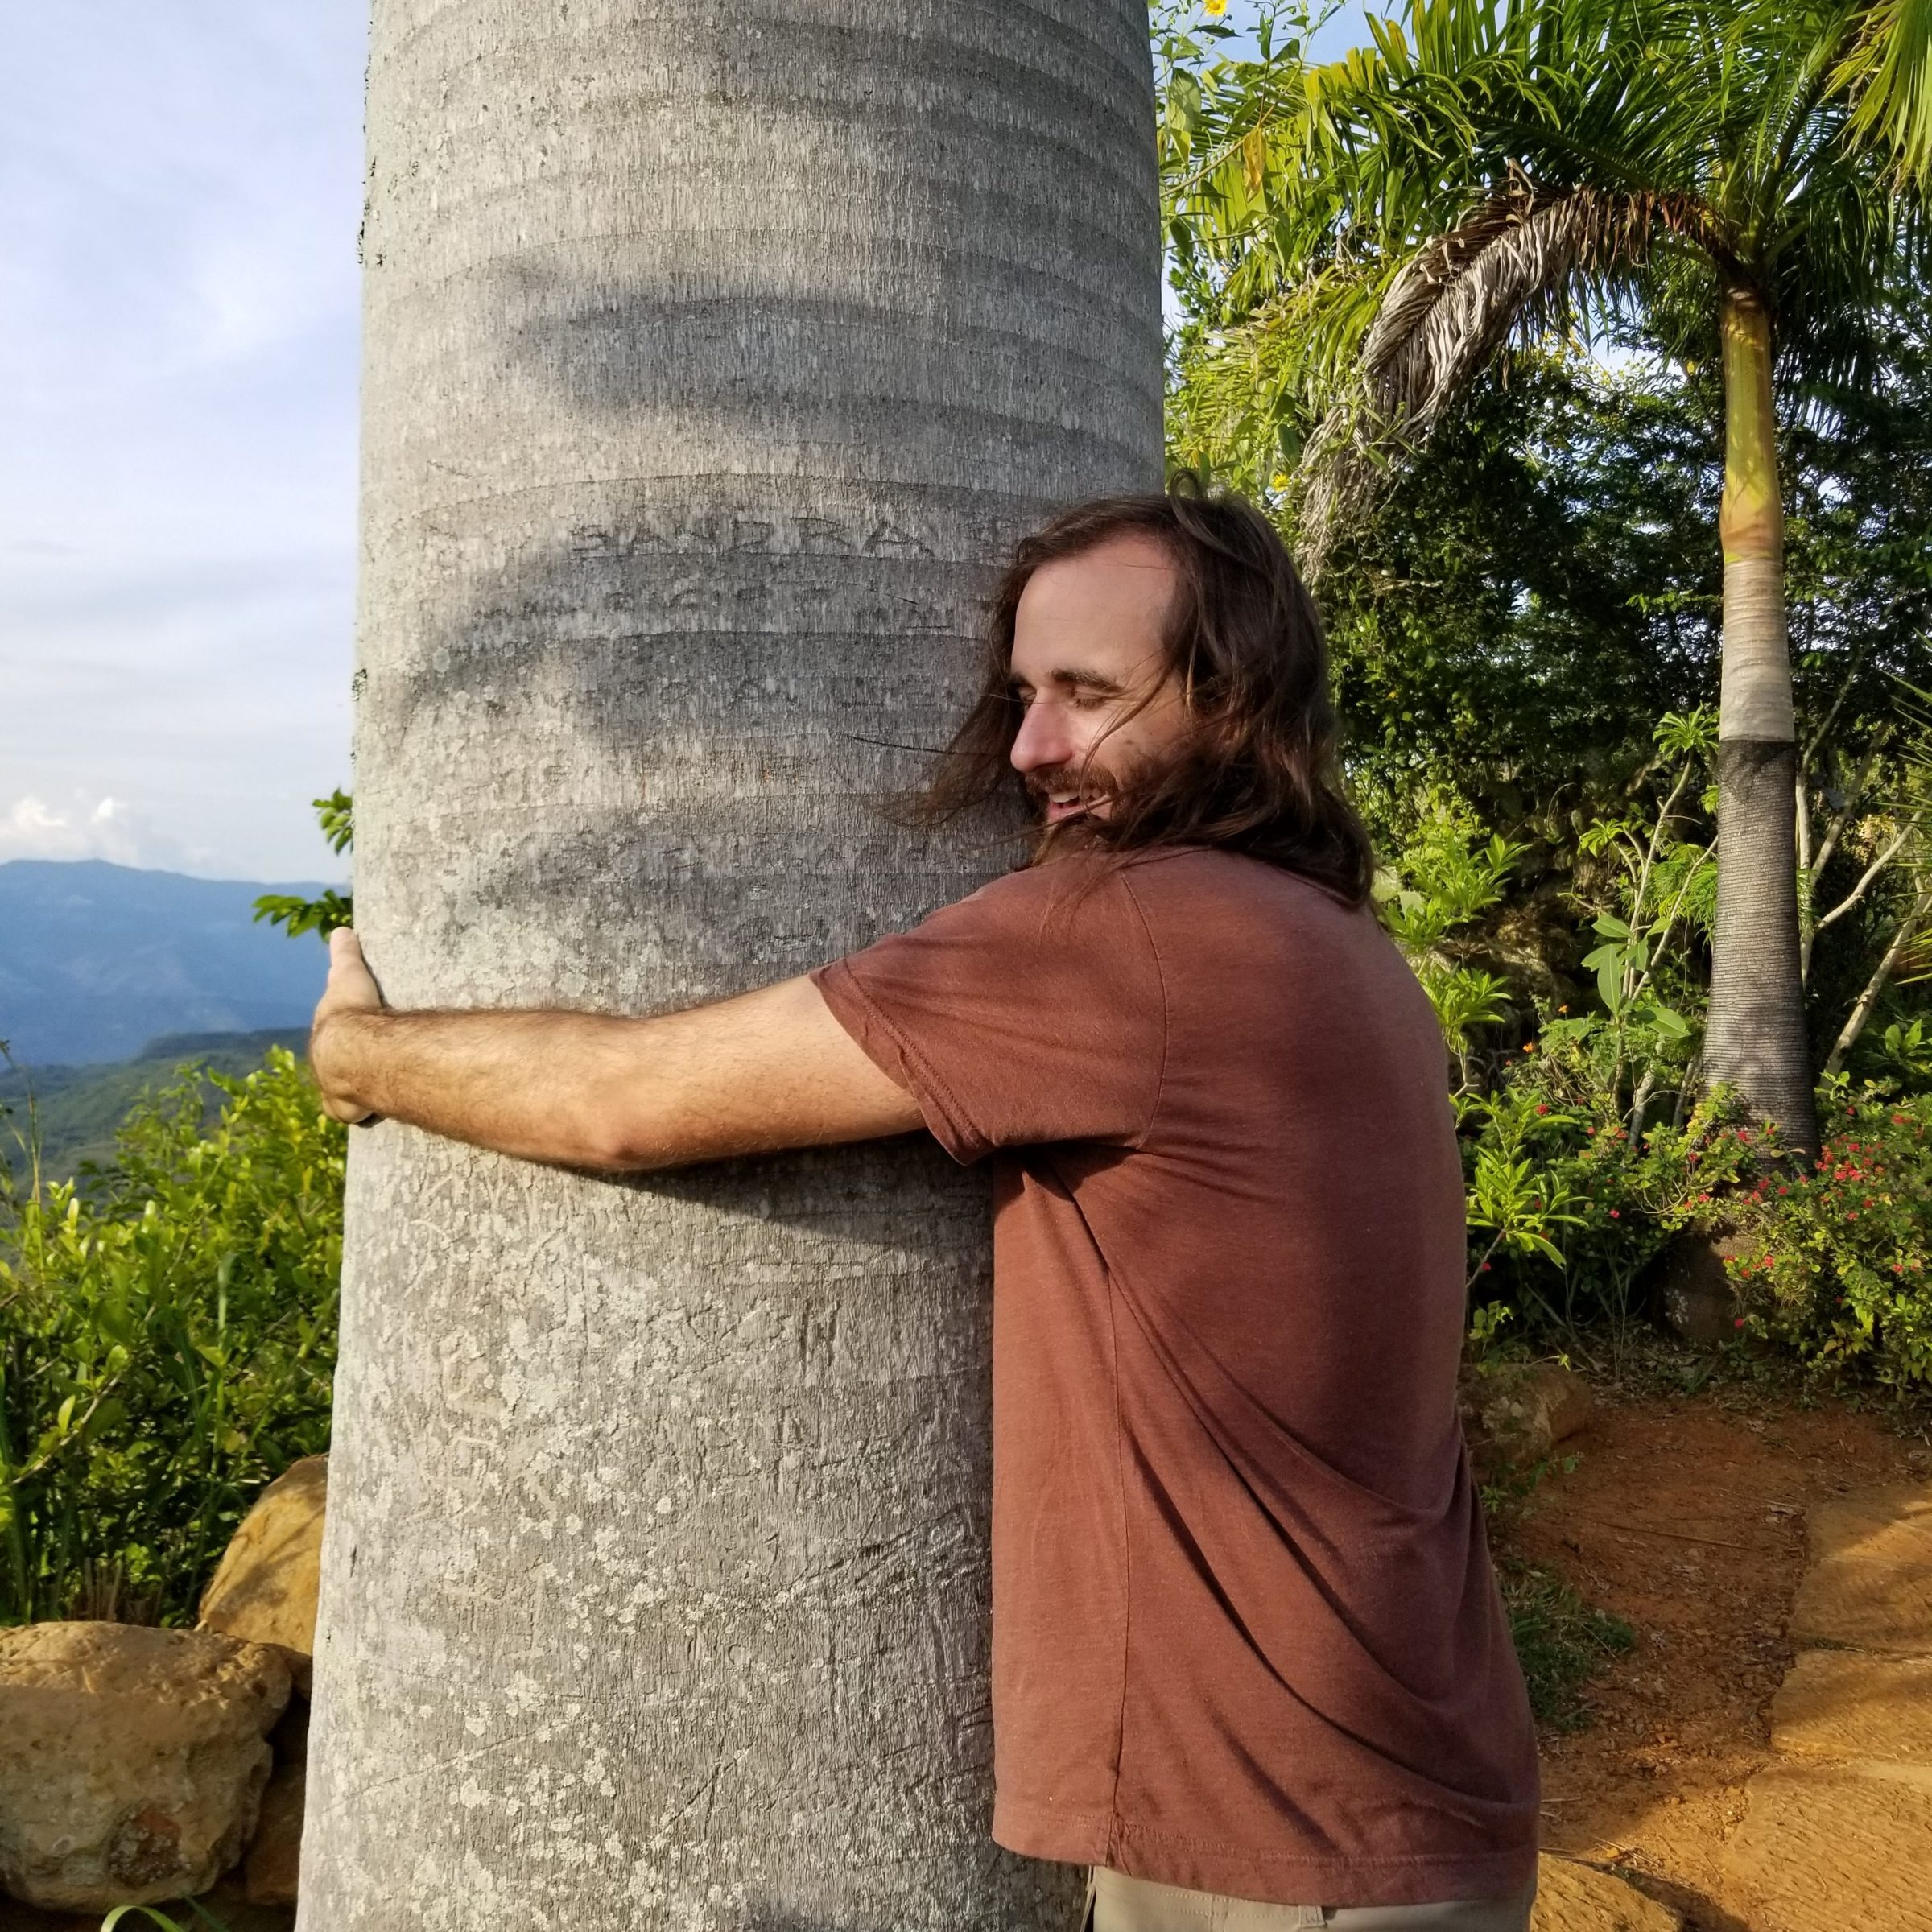 Jimmy Connell, palm tree hugger